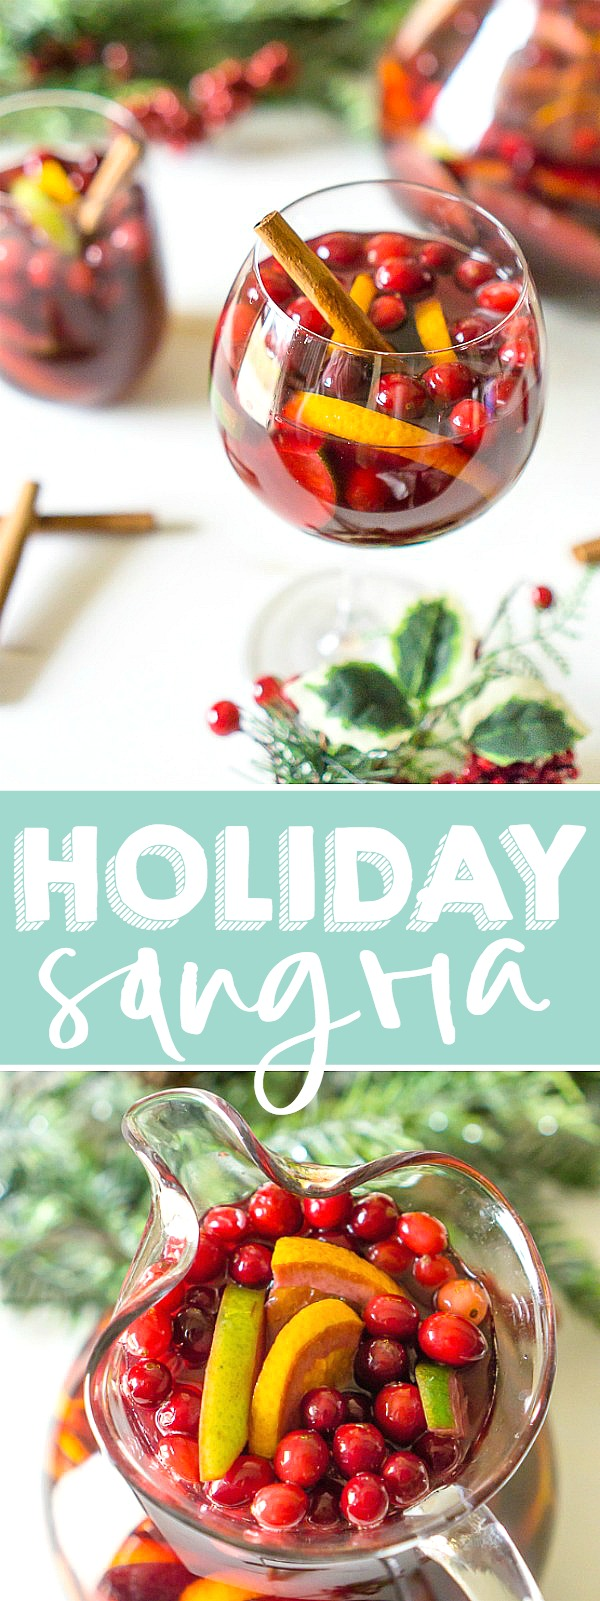 Don't forget to add a special holiday cocktail recipe to your Christmas menu this year, like this Citrus Cranberry Holiday Sangria! Filled with cranberries, citrus, pears, a subtle hint of cinnamon, and sweet red wine, you'll love every sip of this red sangria recipe!| THE LOVE NERDS #redchristmassangria #punchcocktail